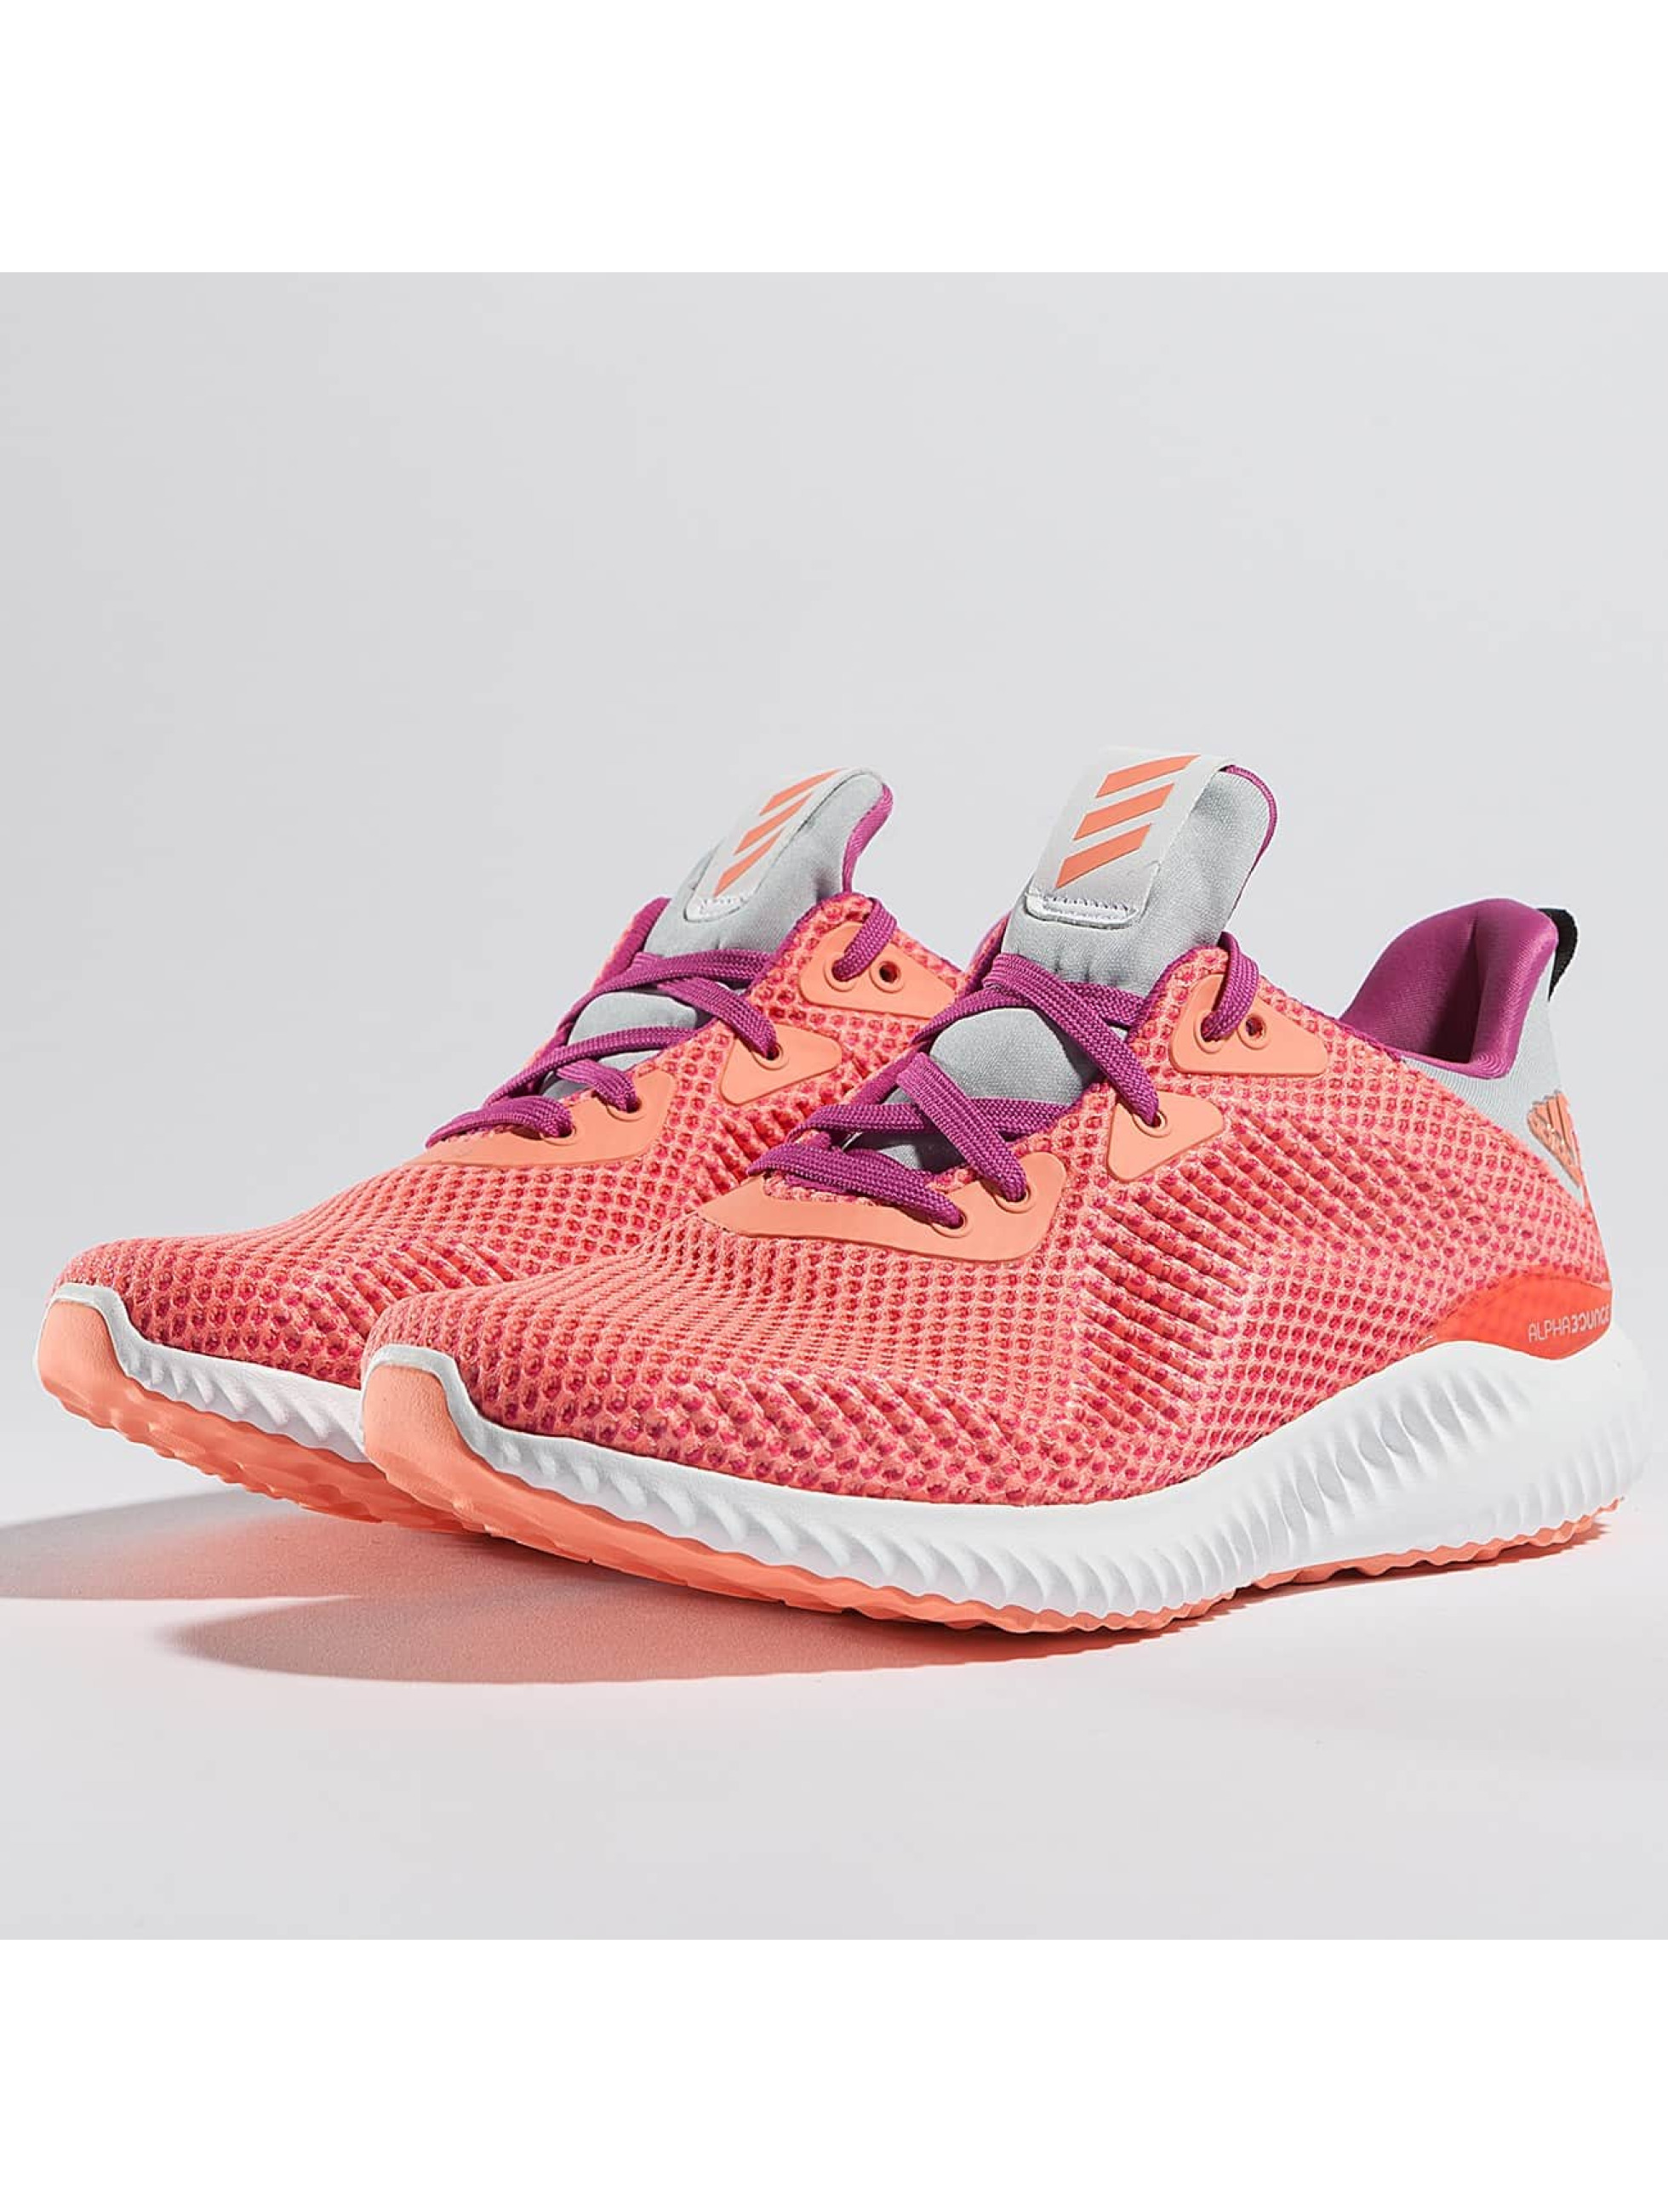 adidas Frauen,Kinder Sneaker Alphabounce J in orange